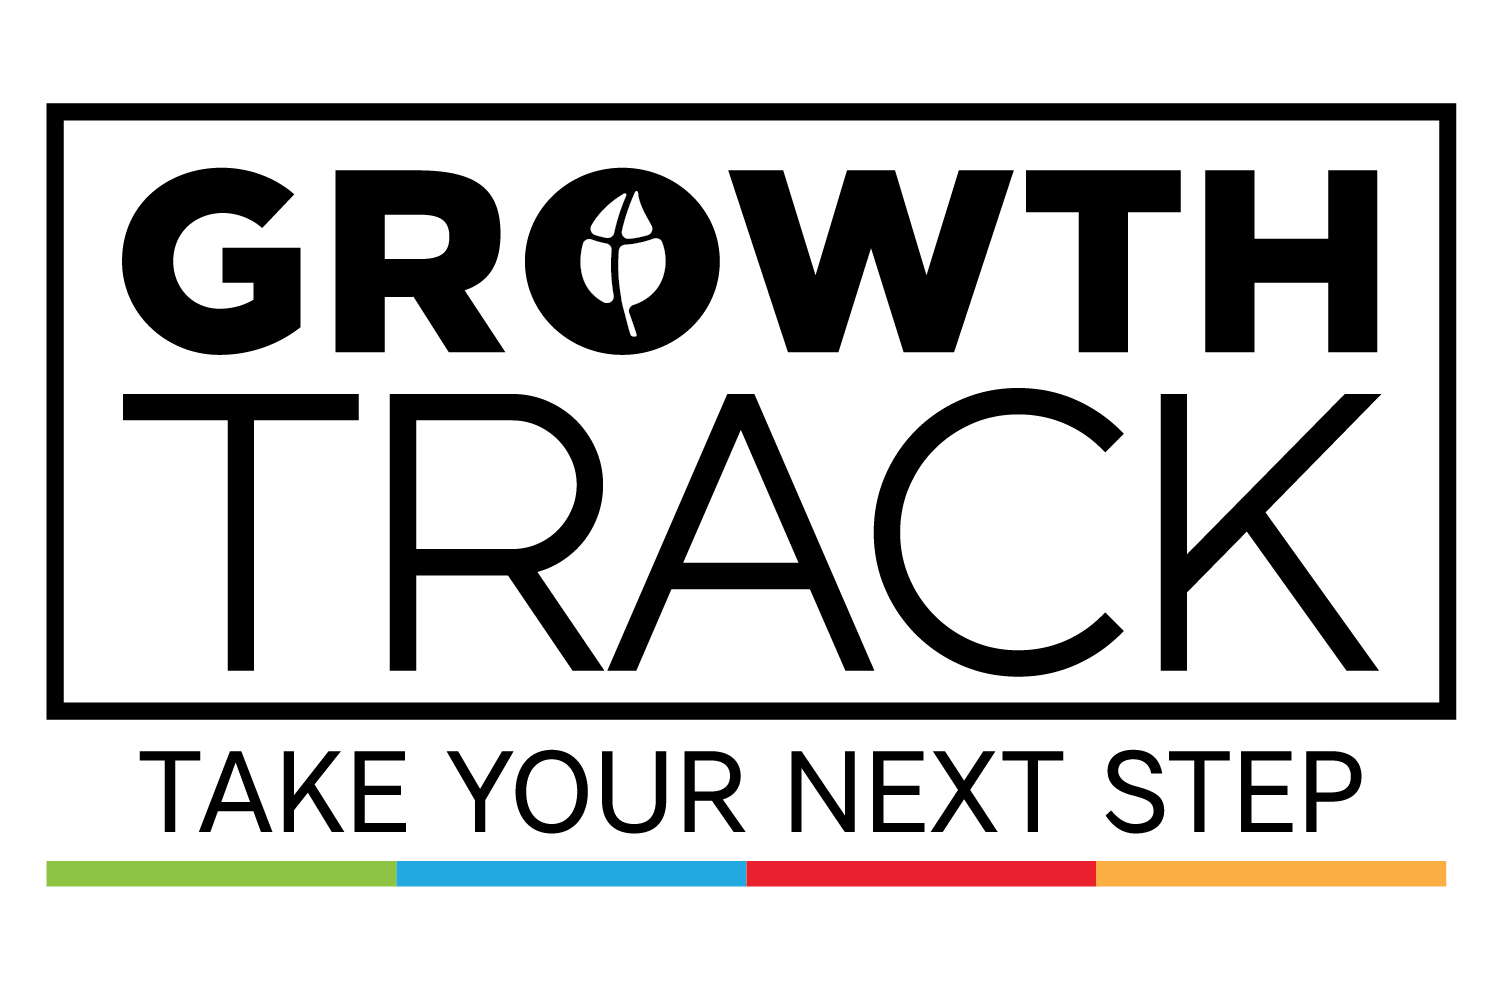 Growth Track - Discover all God created you to become, and fulfill His purpose in your life.